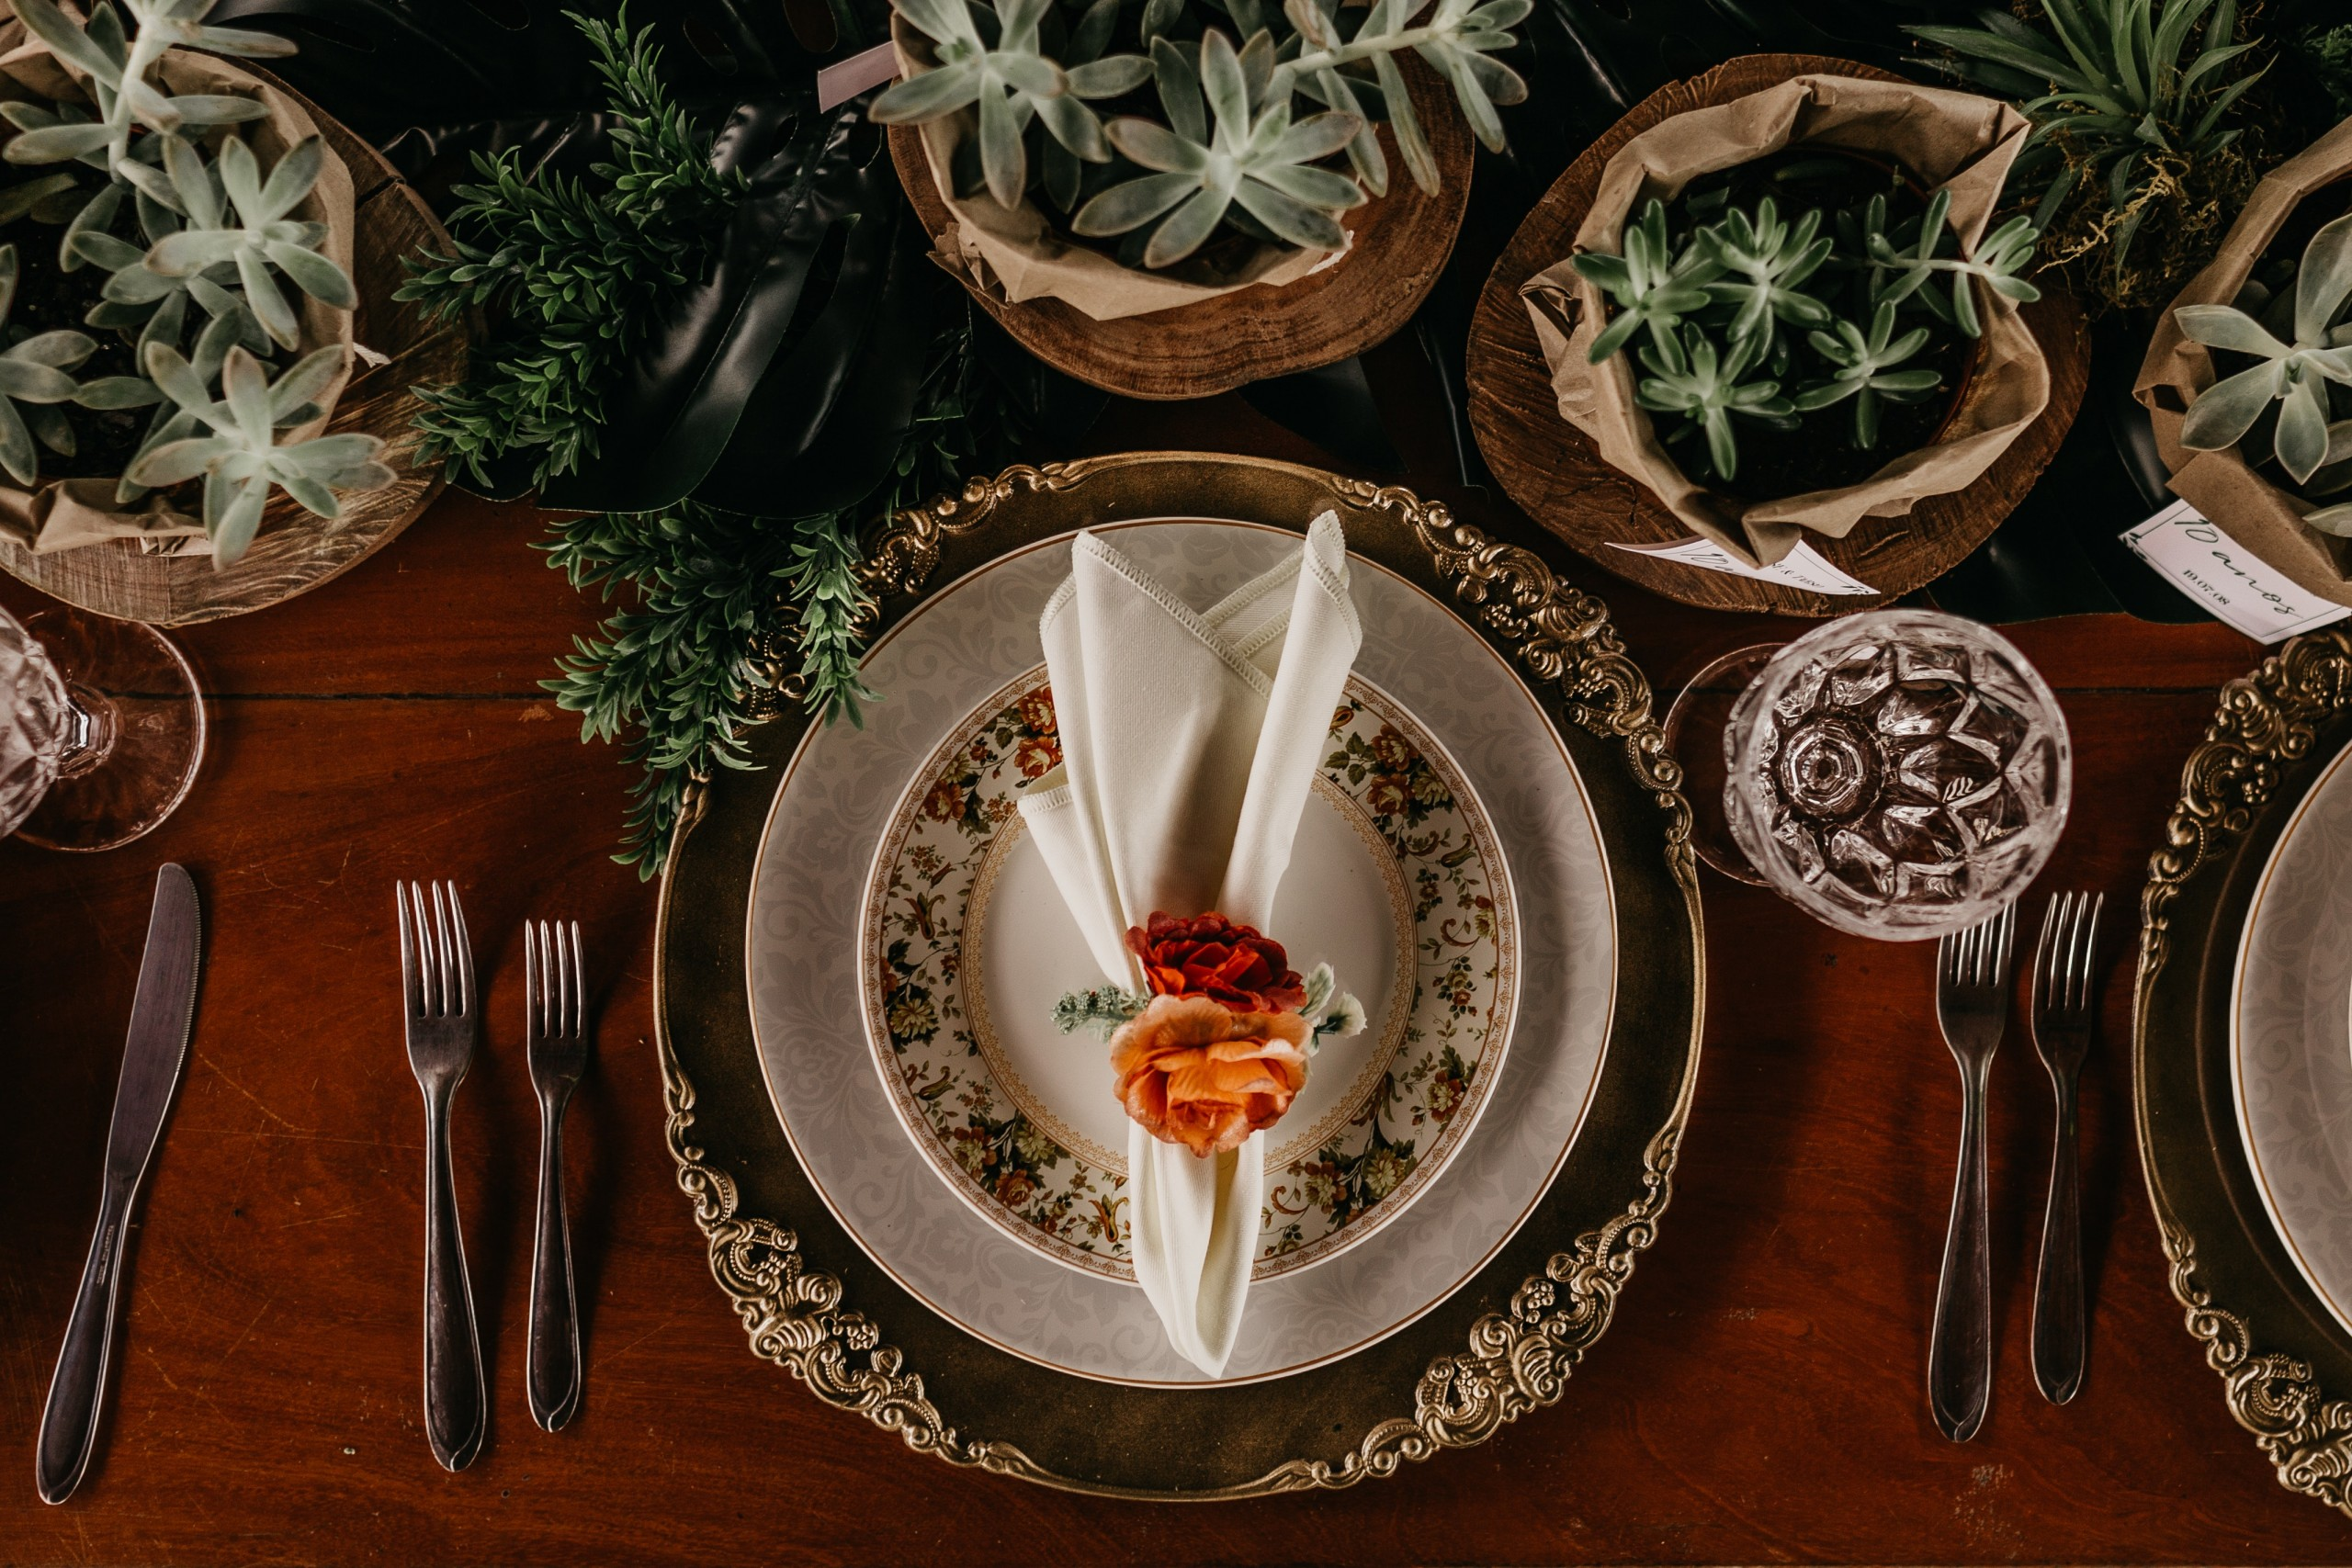 Table setting with ornate gold charger, and floral patterned plates. Silverware, and succlents surround the plate on wooden table.